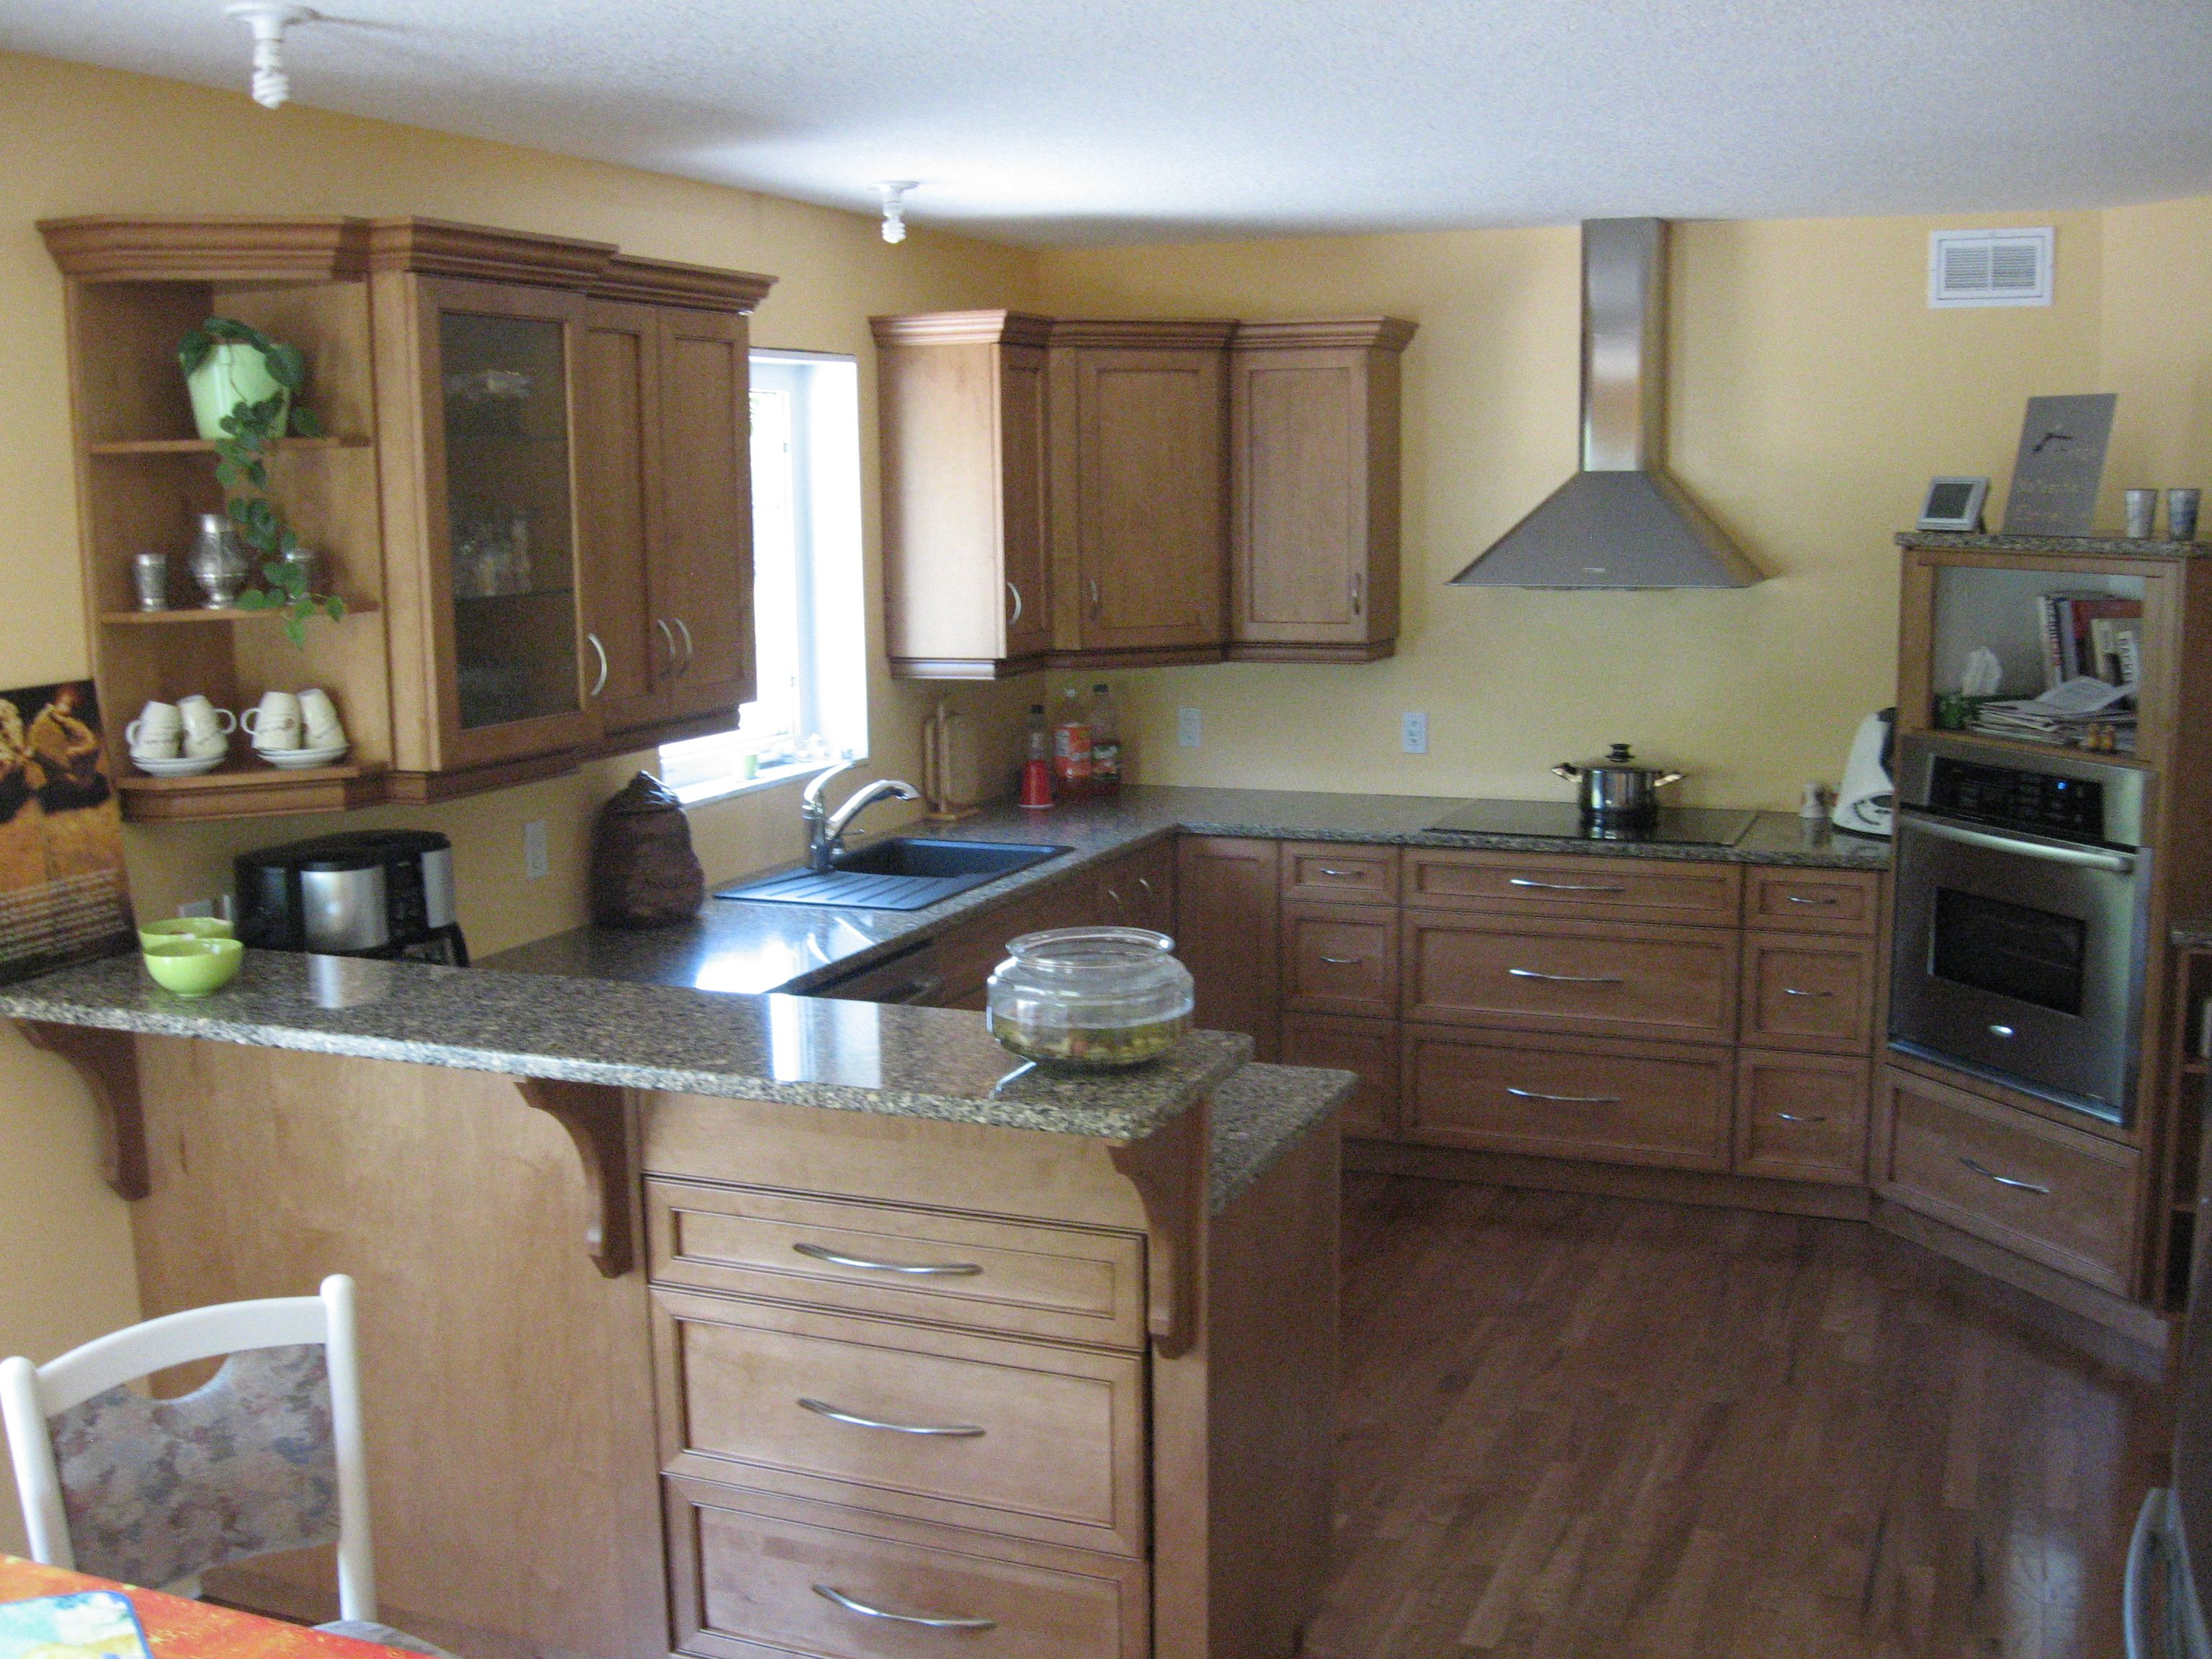 Cabinets: Maple - Wheatfield with Black Glaze / Countertop: Cambria ...